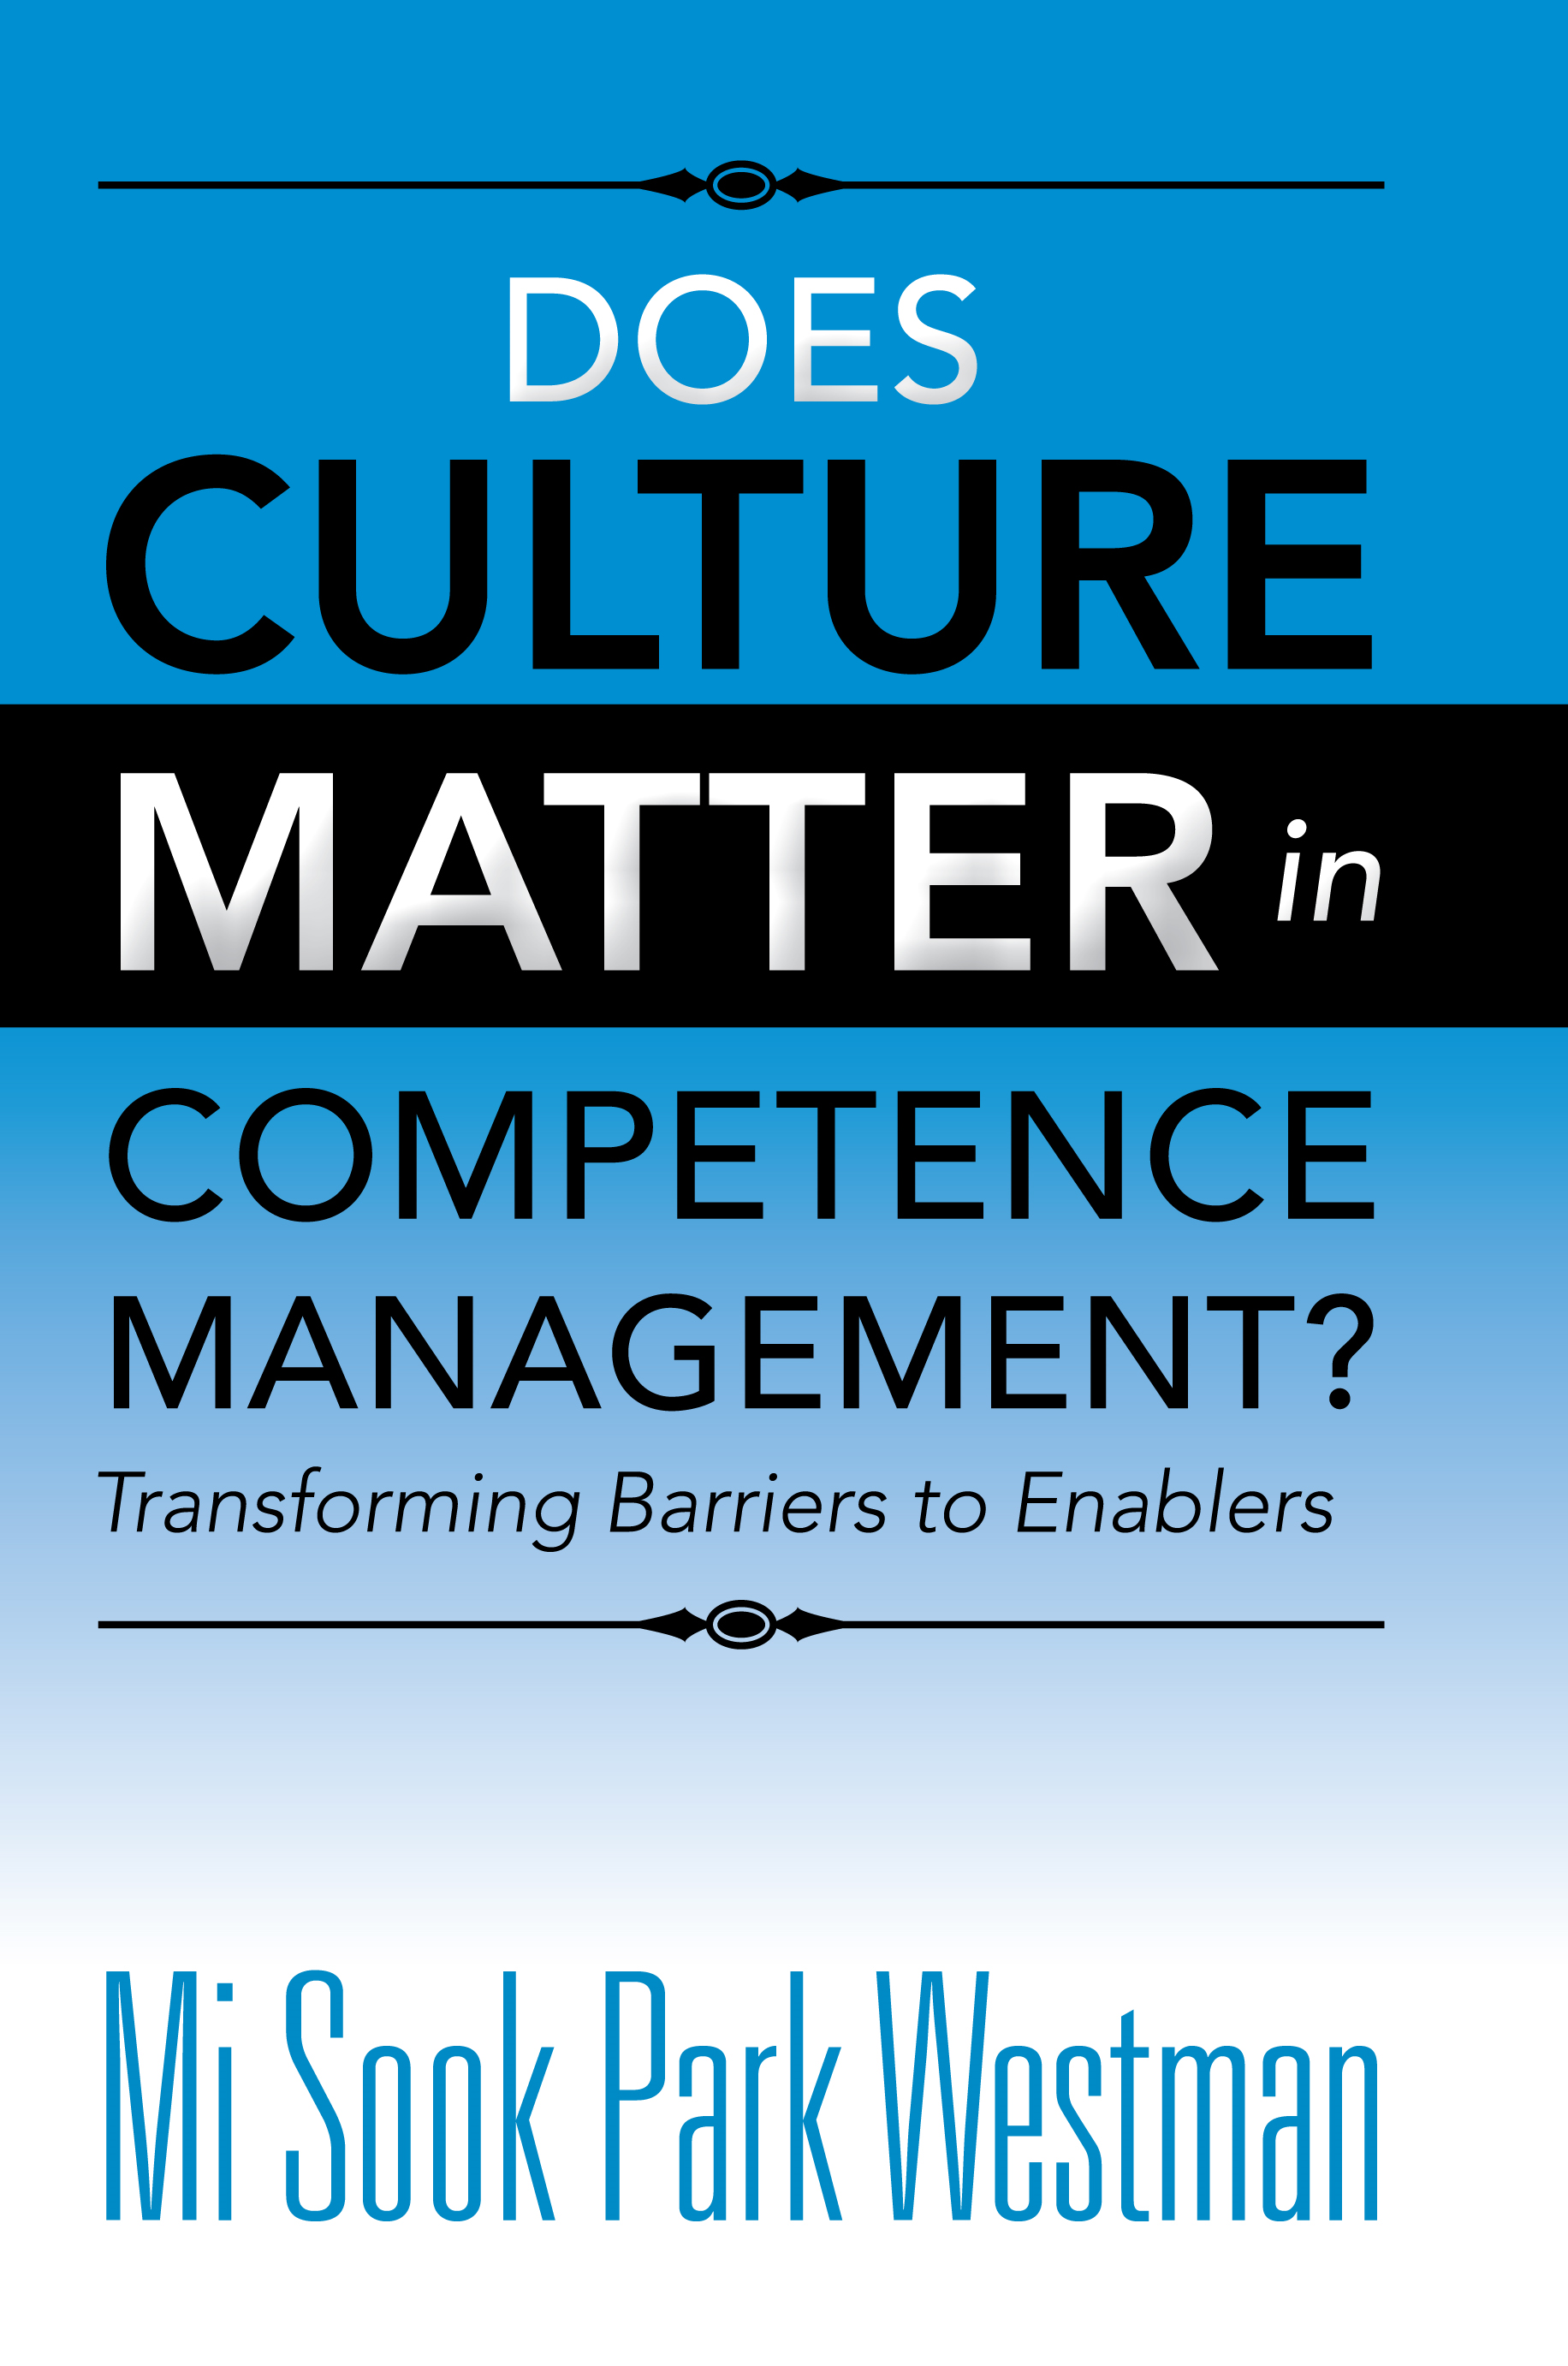 Does Culture Matter in Competence Management?